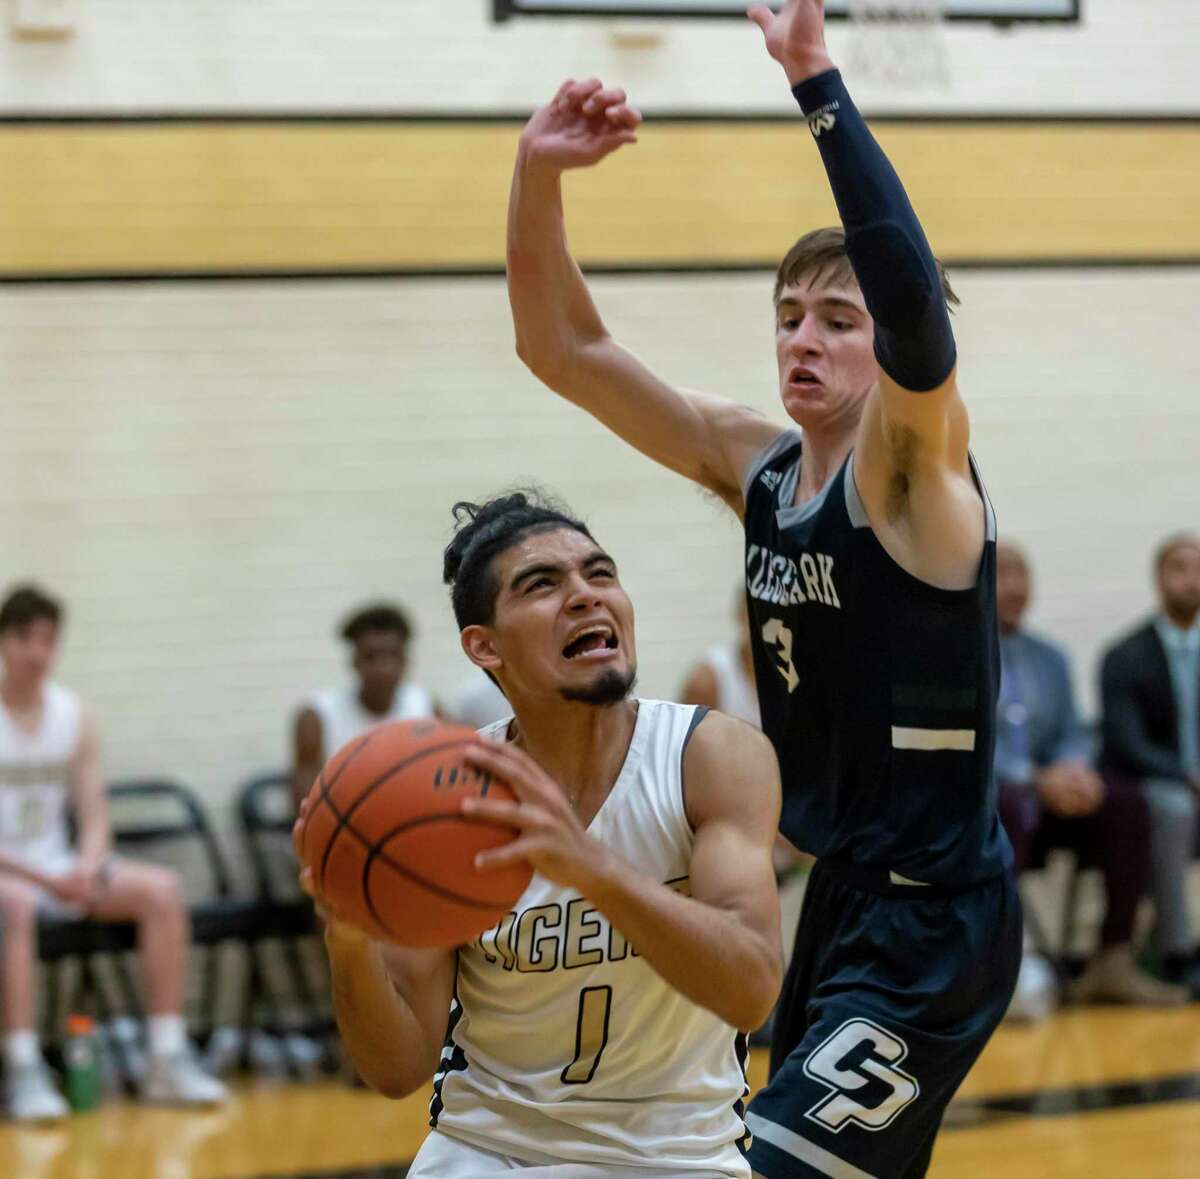 Conroe player David Sanchez (1) shoots for the basket while under pressure from College Park guard Drew Calderon (3) during the second half in a District 15-6A boys basketball game in The Pit on Friday, Feb. 14, 2020.